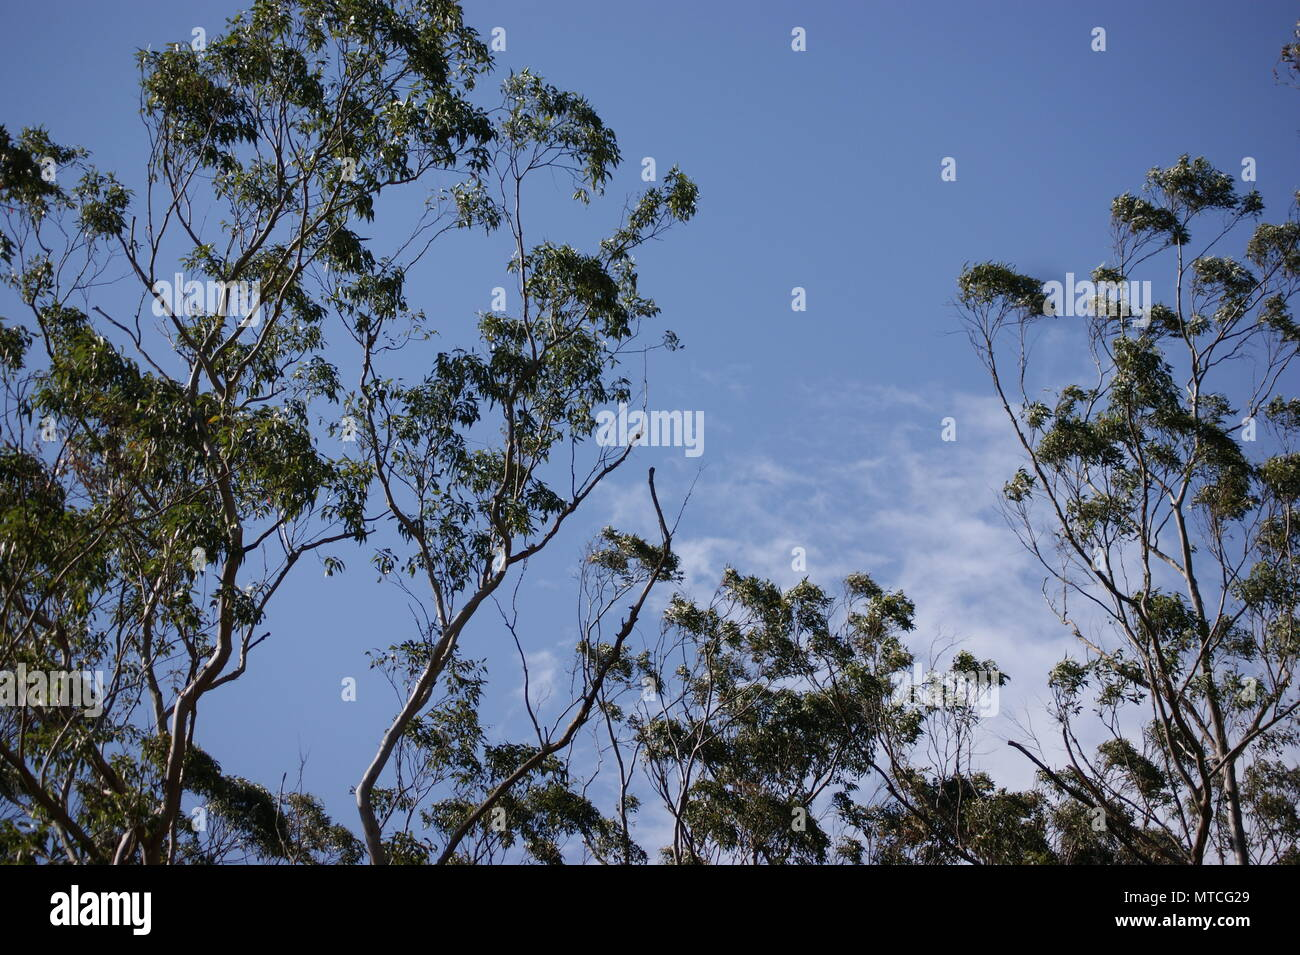 Australian trees set against mostly blue sky with some cloud - Stock Image